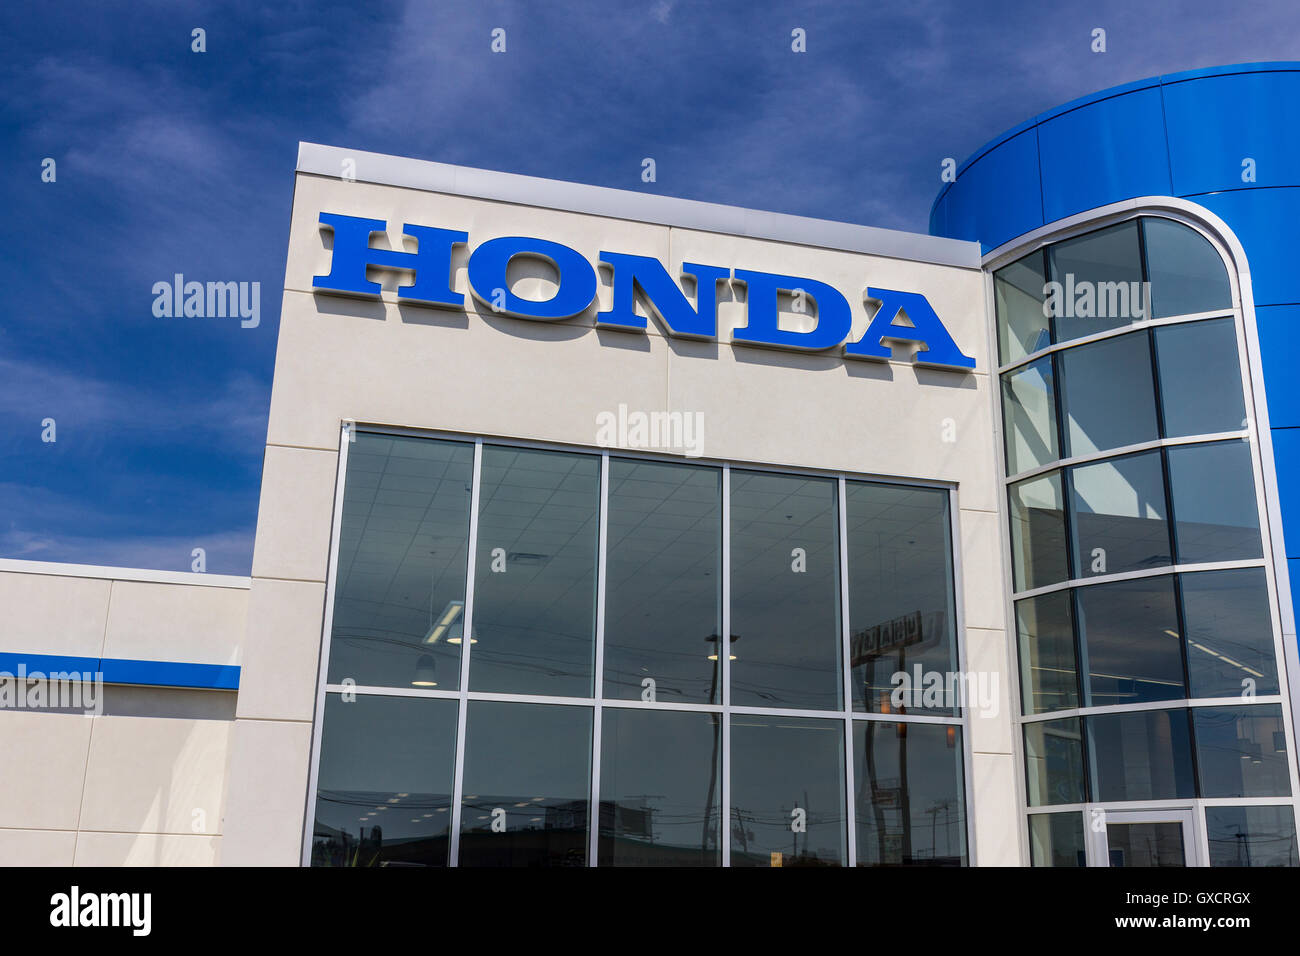 Honda Motor Dealer Sign Stock Photos